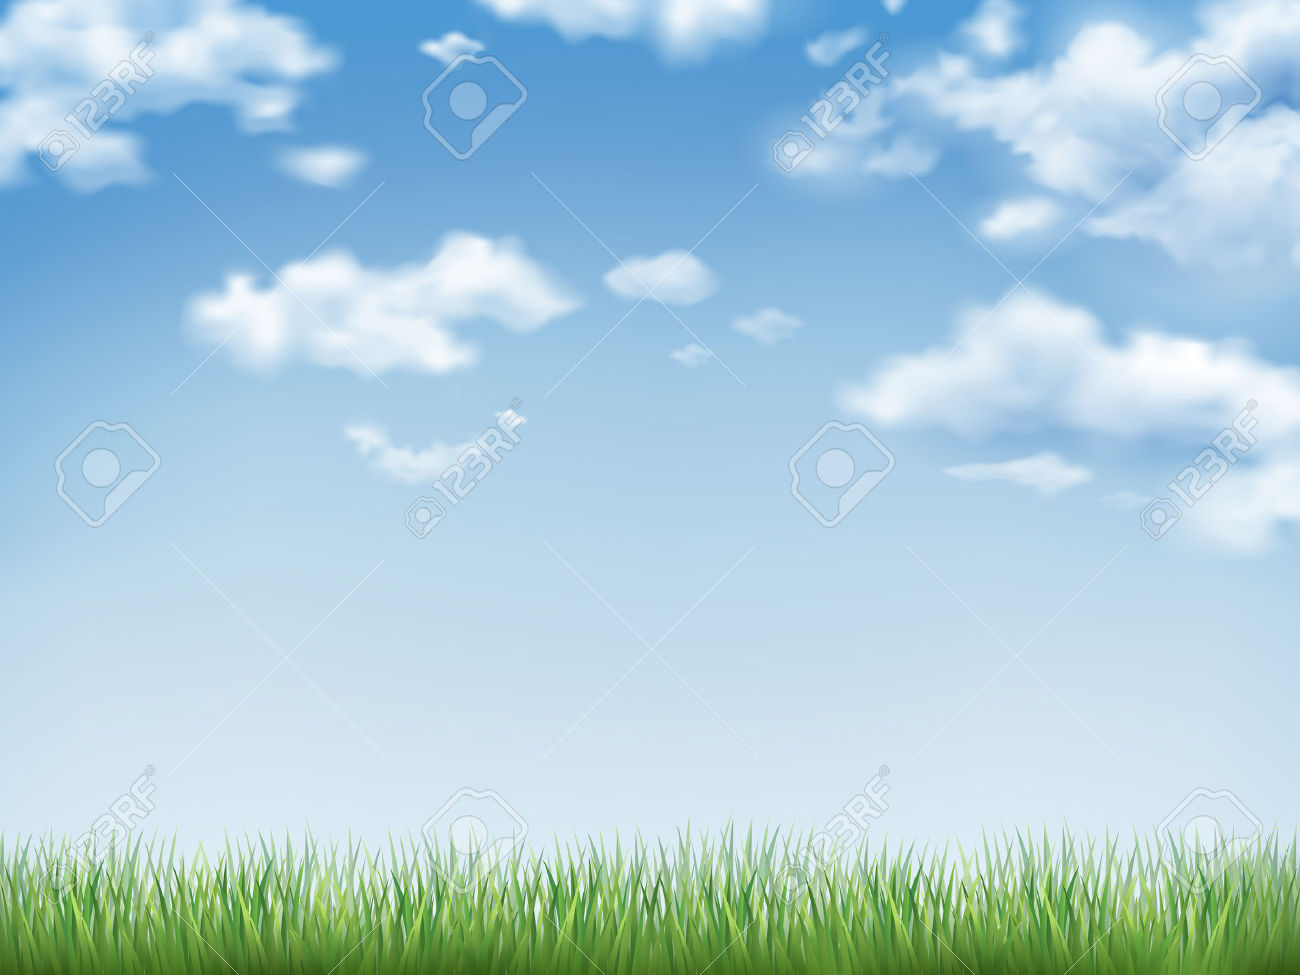 Blue Sky And Field Of Green Grass Background Royalty Free Cliparts.